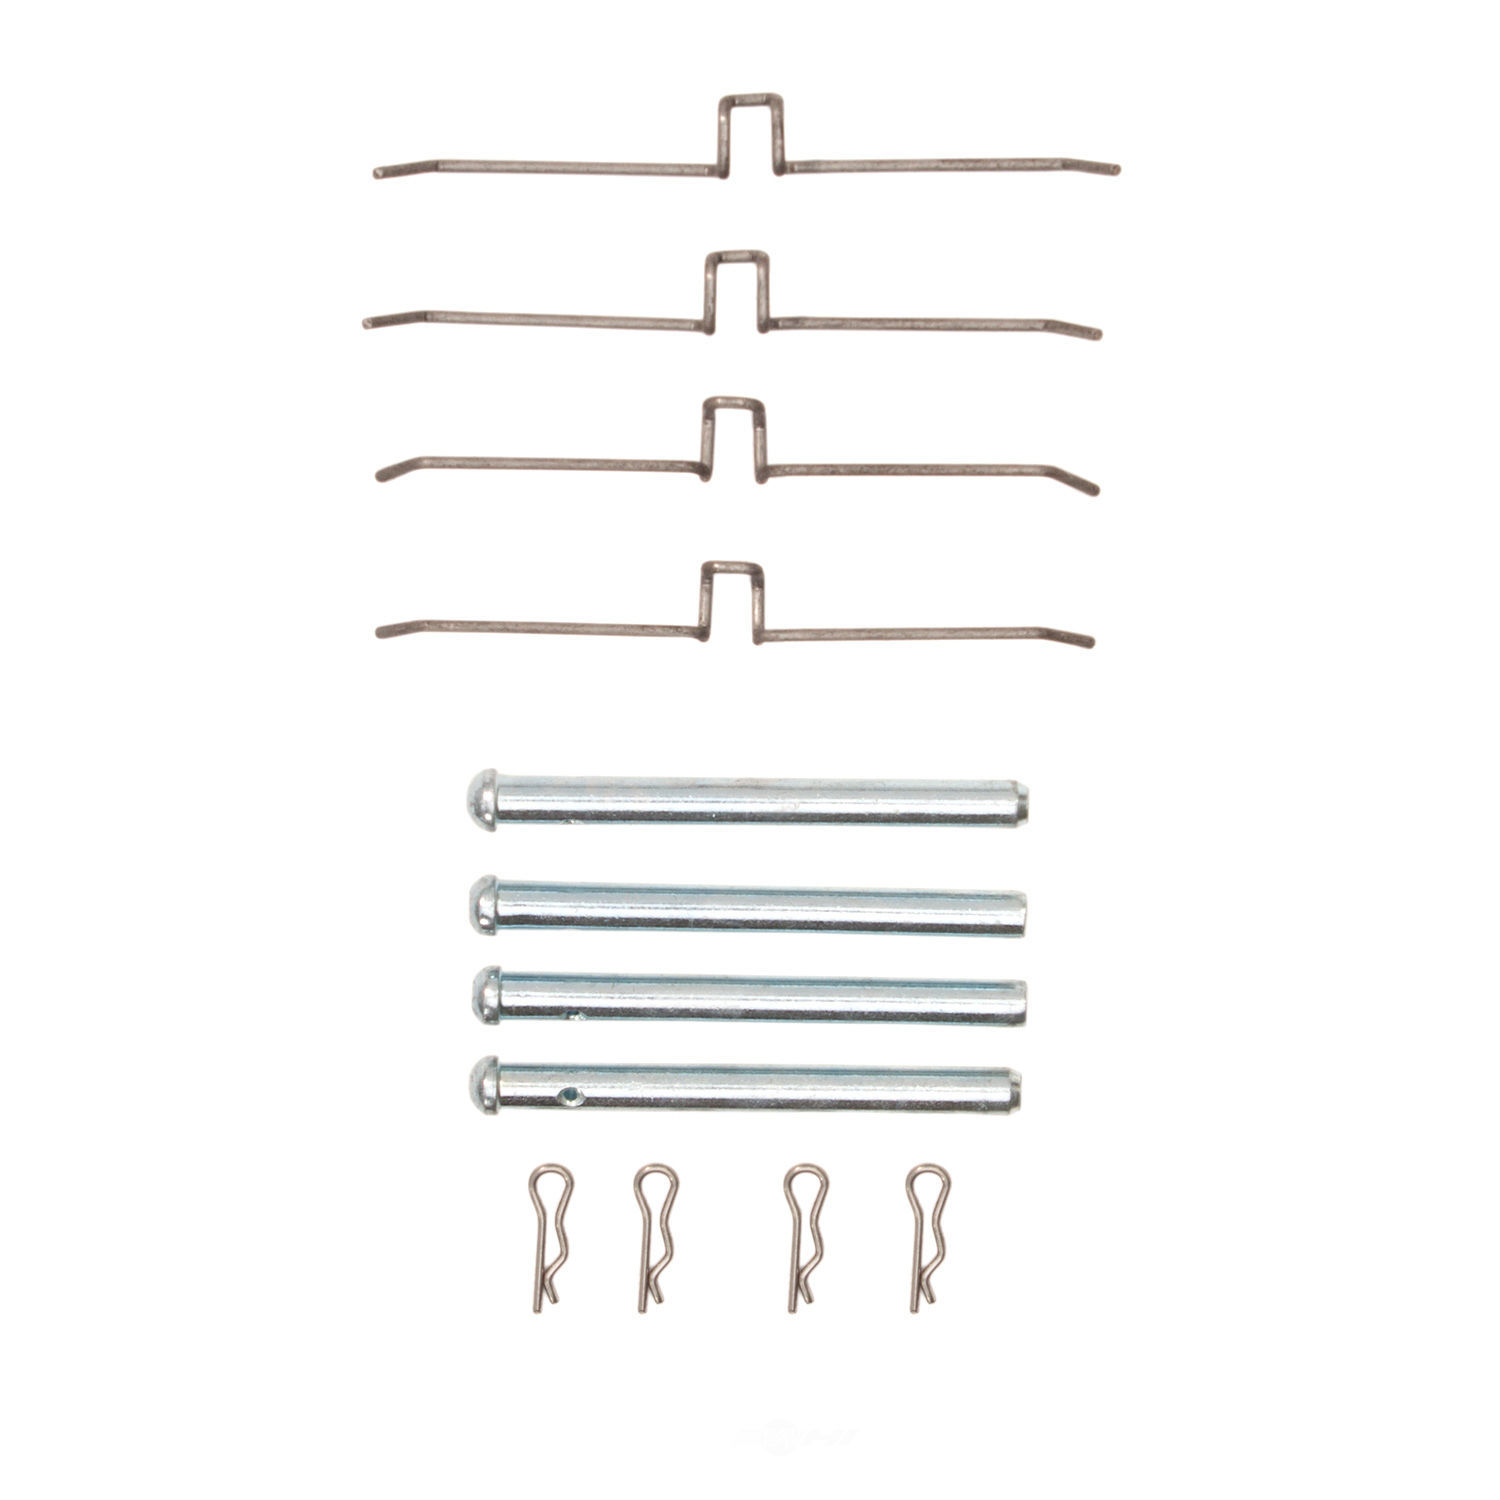 DFC - DFC Disc Brake Hardware Kit - DF1 340-27010